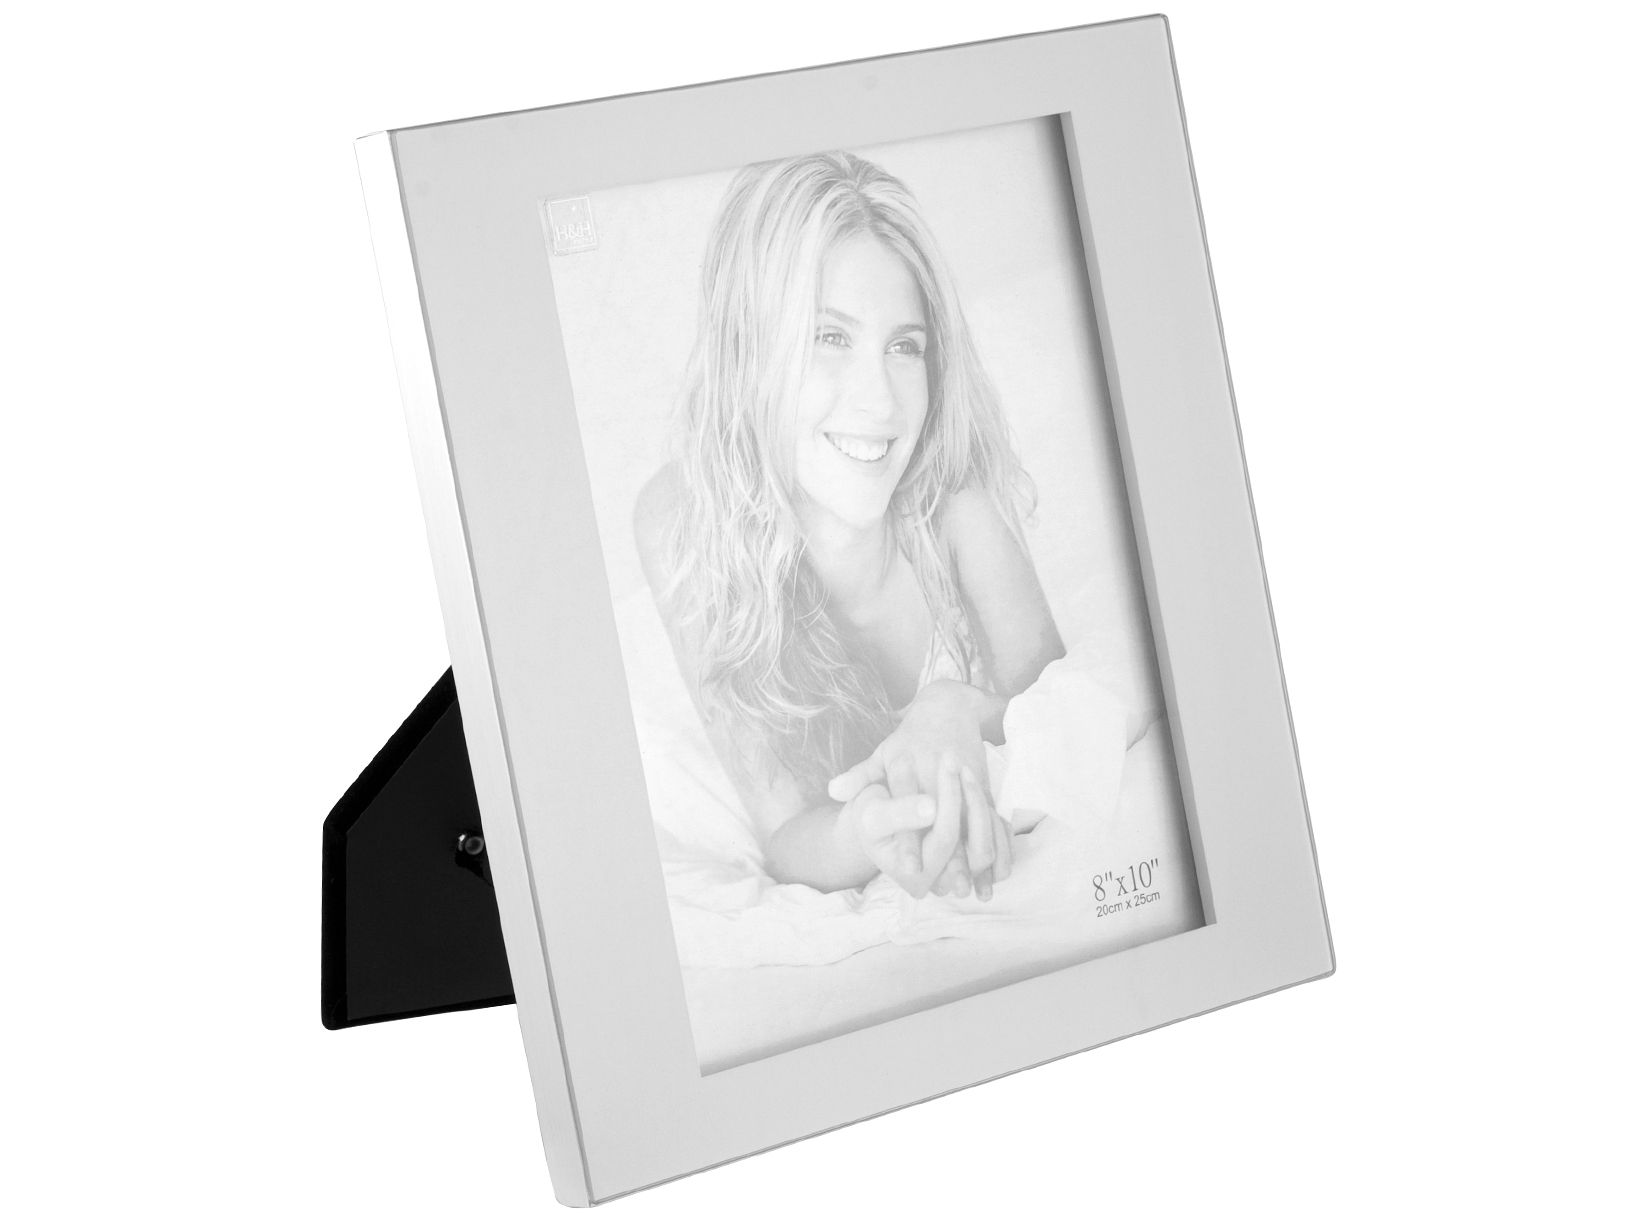 H&h Photo Frame Gray Glass Cm20x25 Frames and Mirrors | eBay